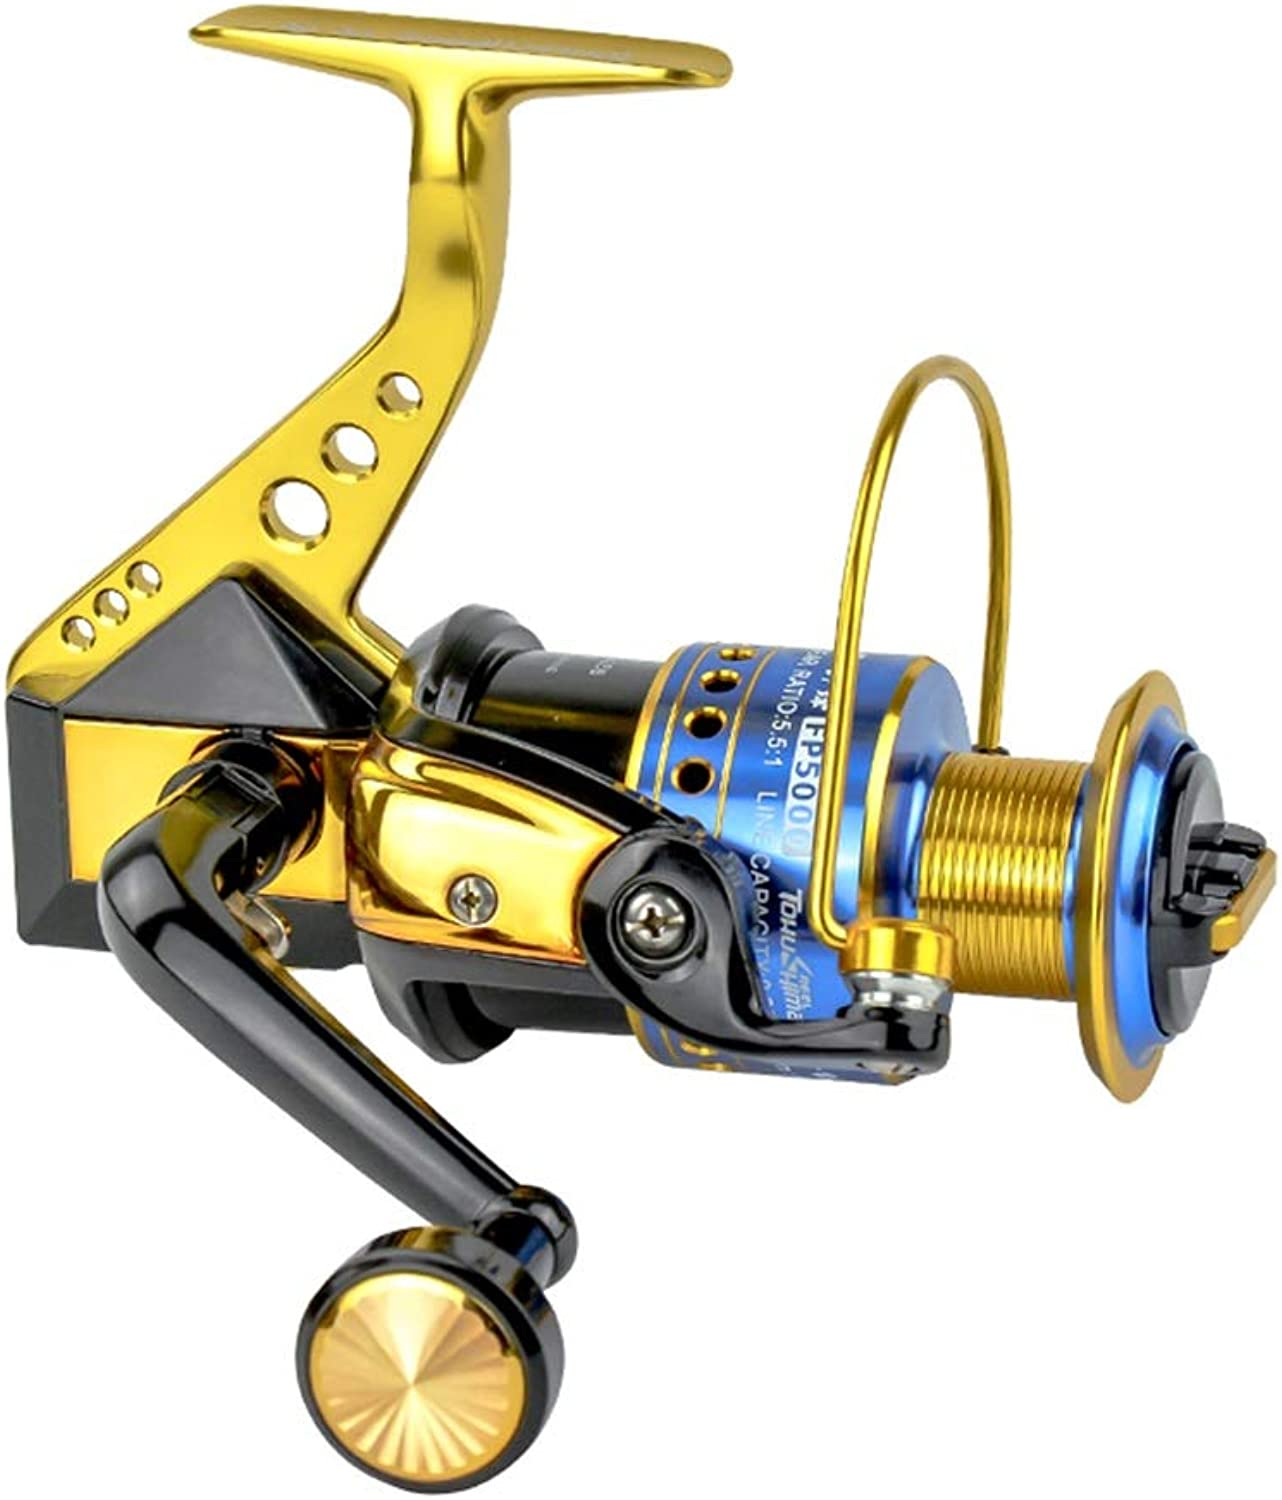 Fishing Reel, Front Drag Spinning Metal 12 Bearing for Seawater Freshwater Anchor Fish Wheel Lure Rock Fishing Left and Right Hand Interchangeable